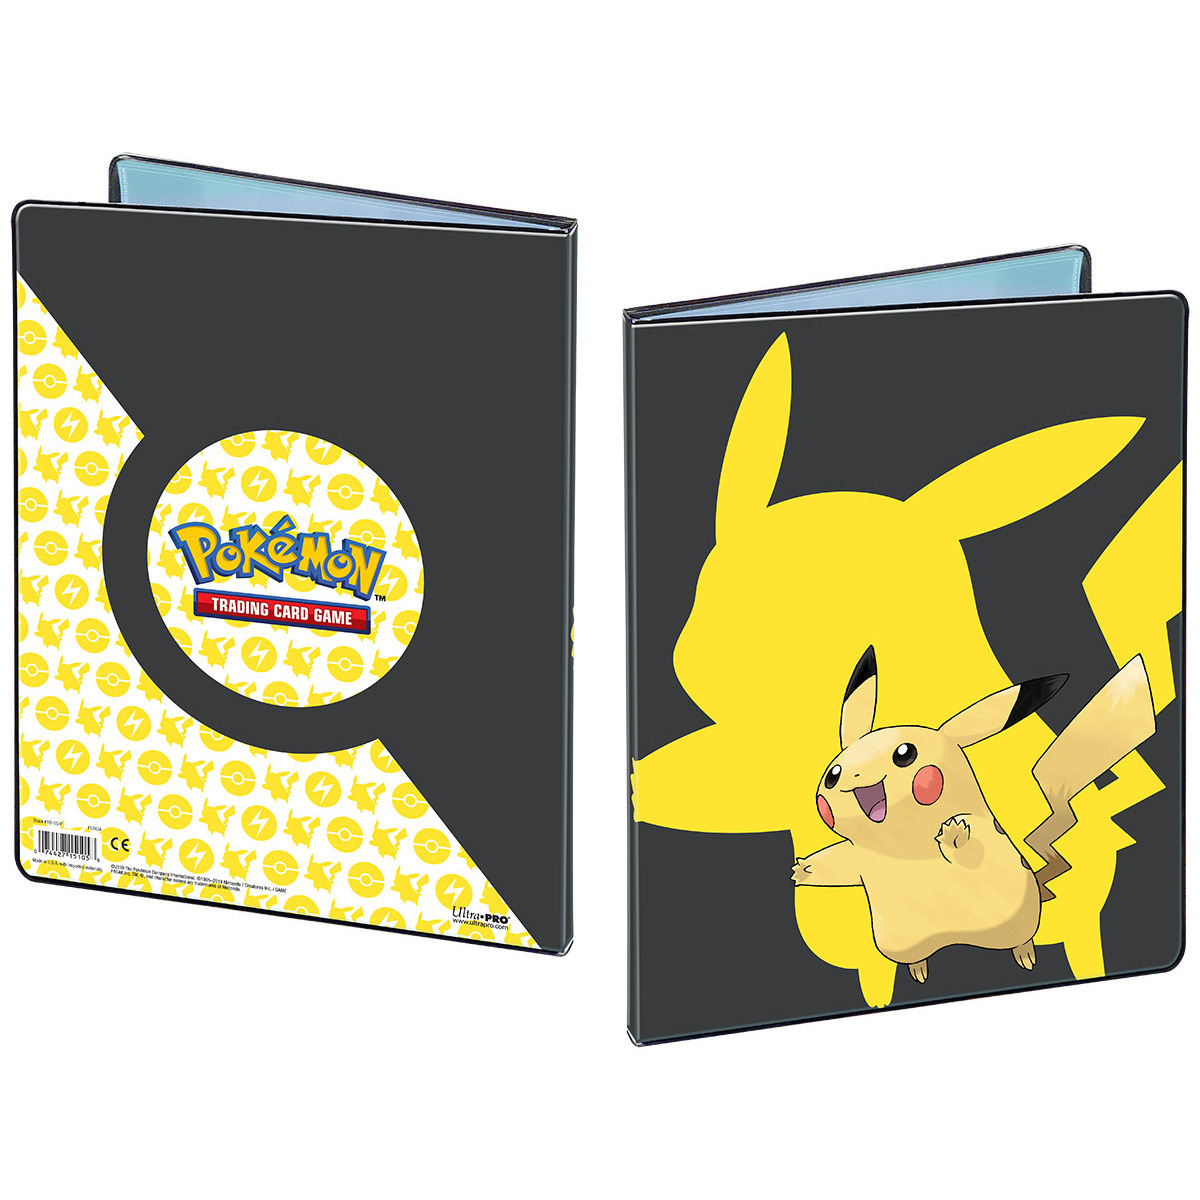 E-15105-P PICKACHU 9-POCKET PORTFOLIO FOR POKEMON